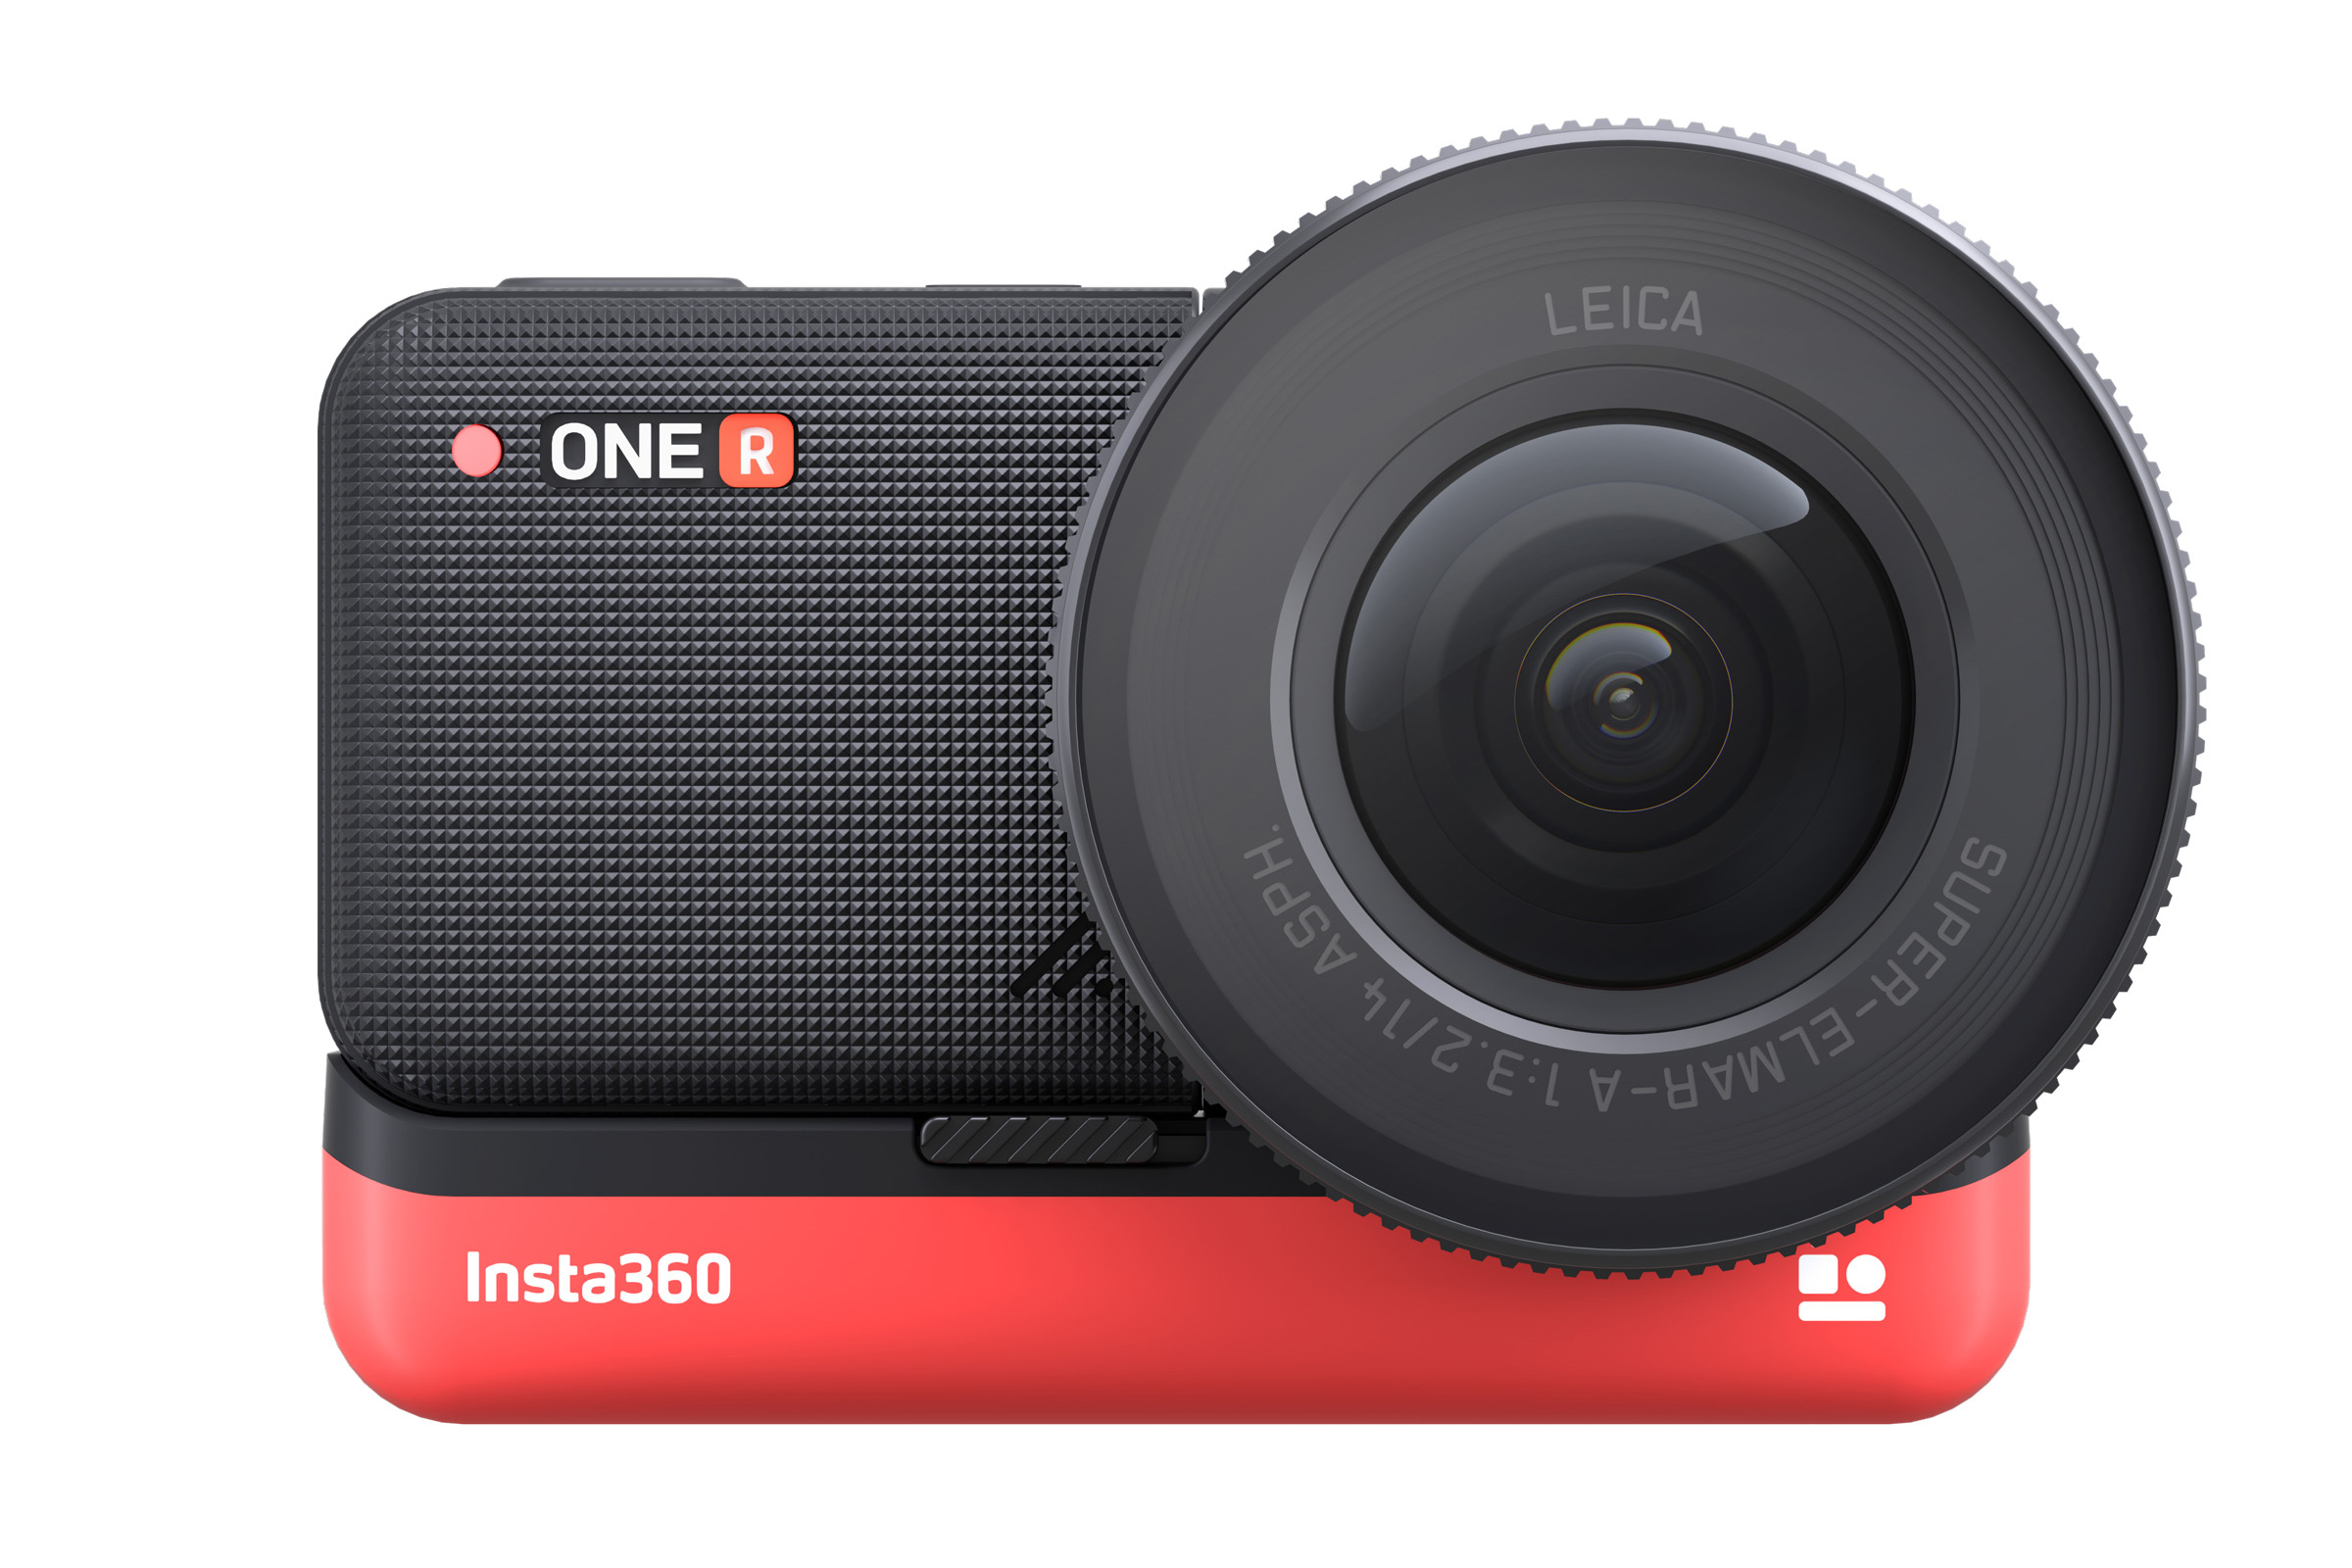 Review The Insta360 One R Is A Modular Action Camera With A 1 Type Sensor Digital Photography Review